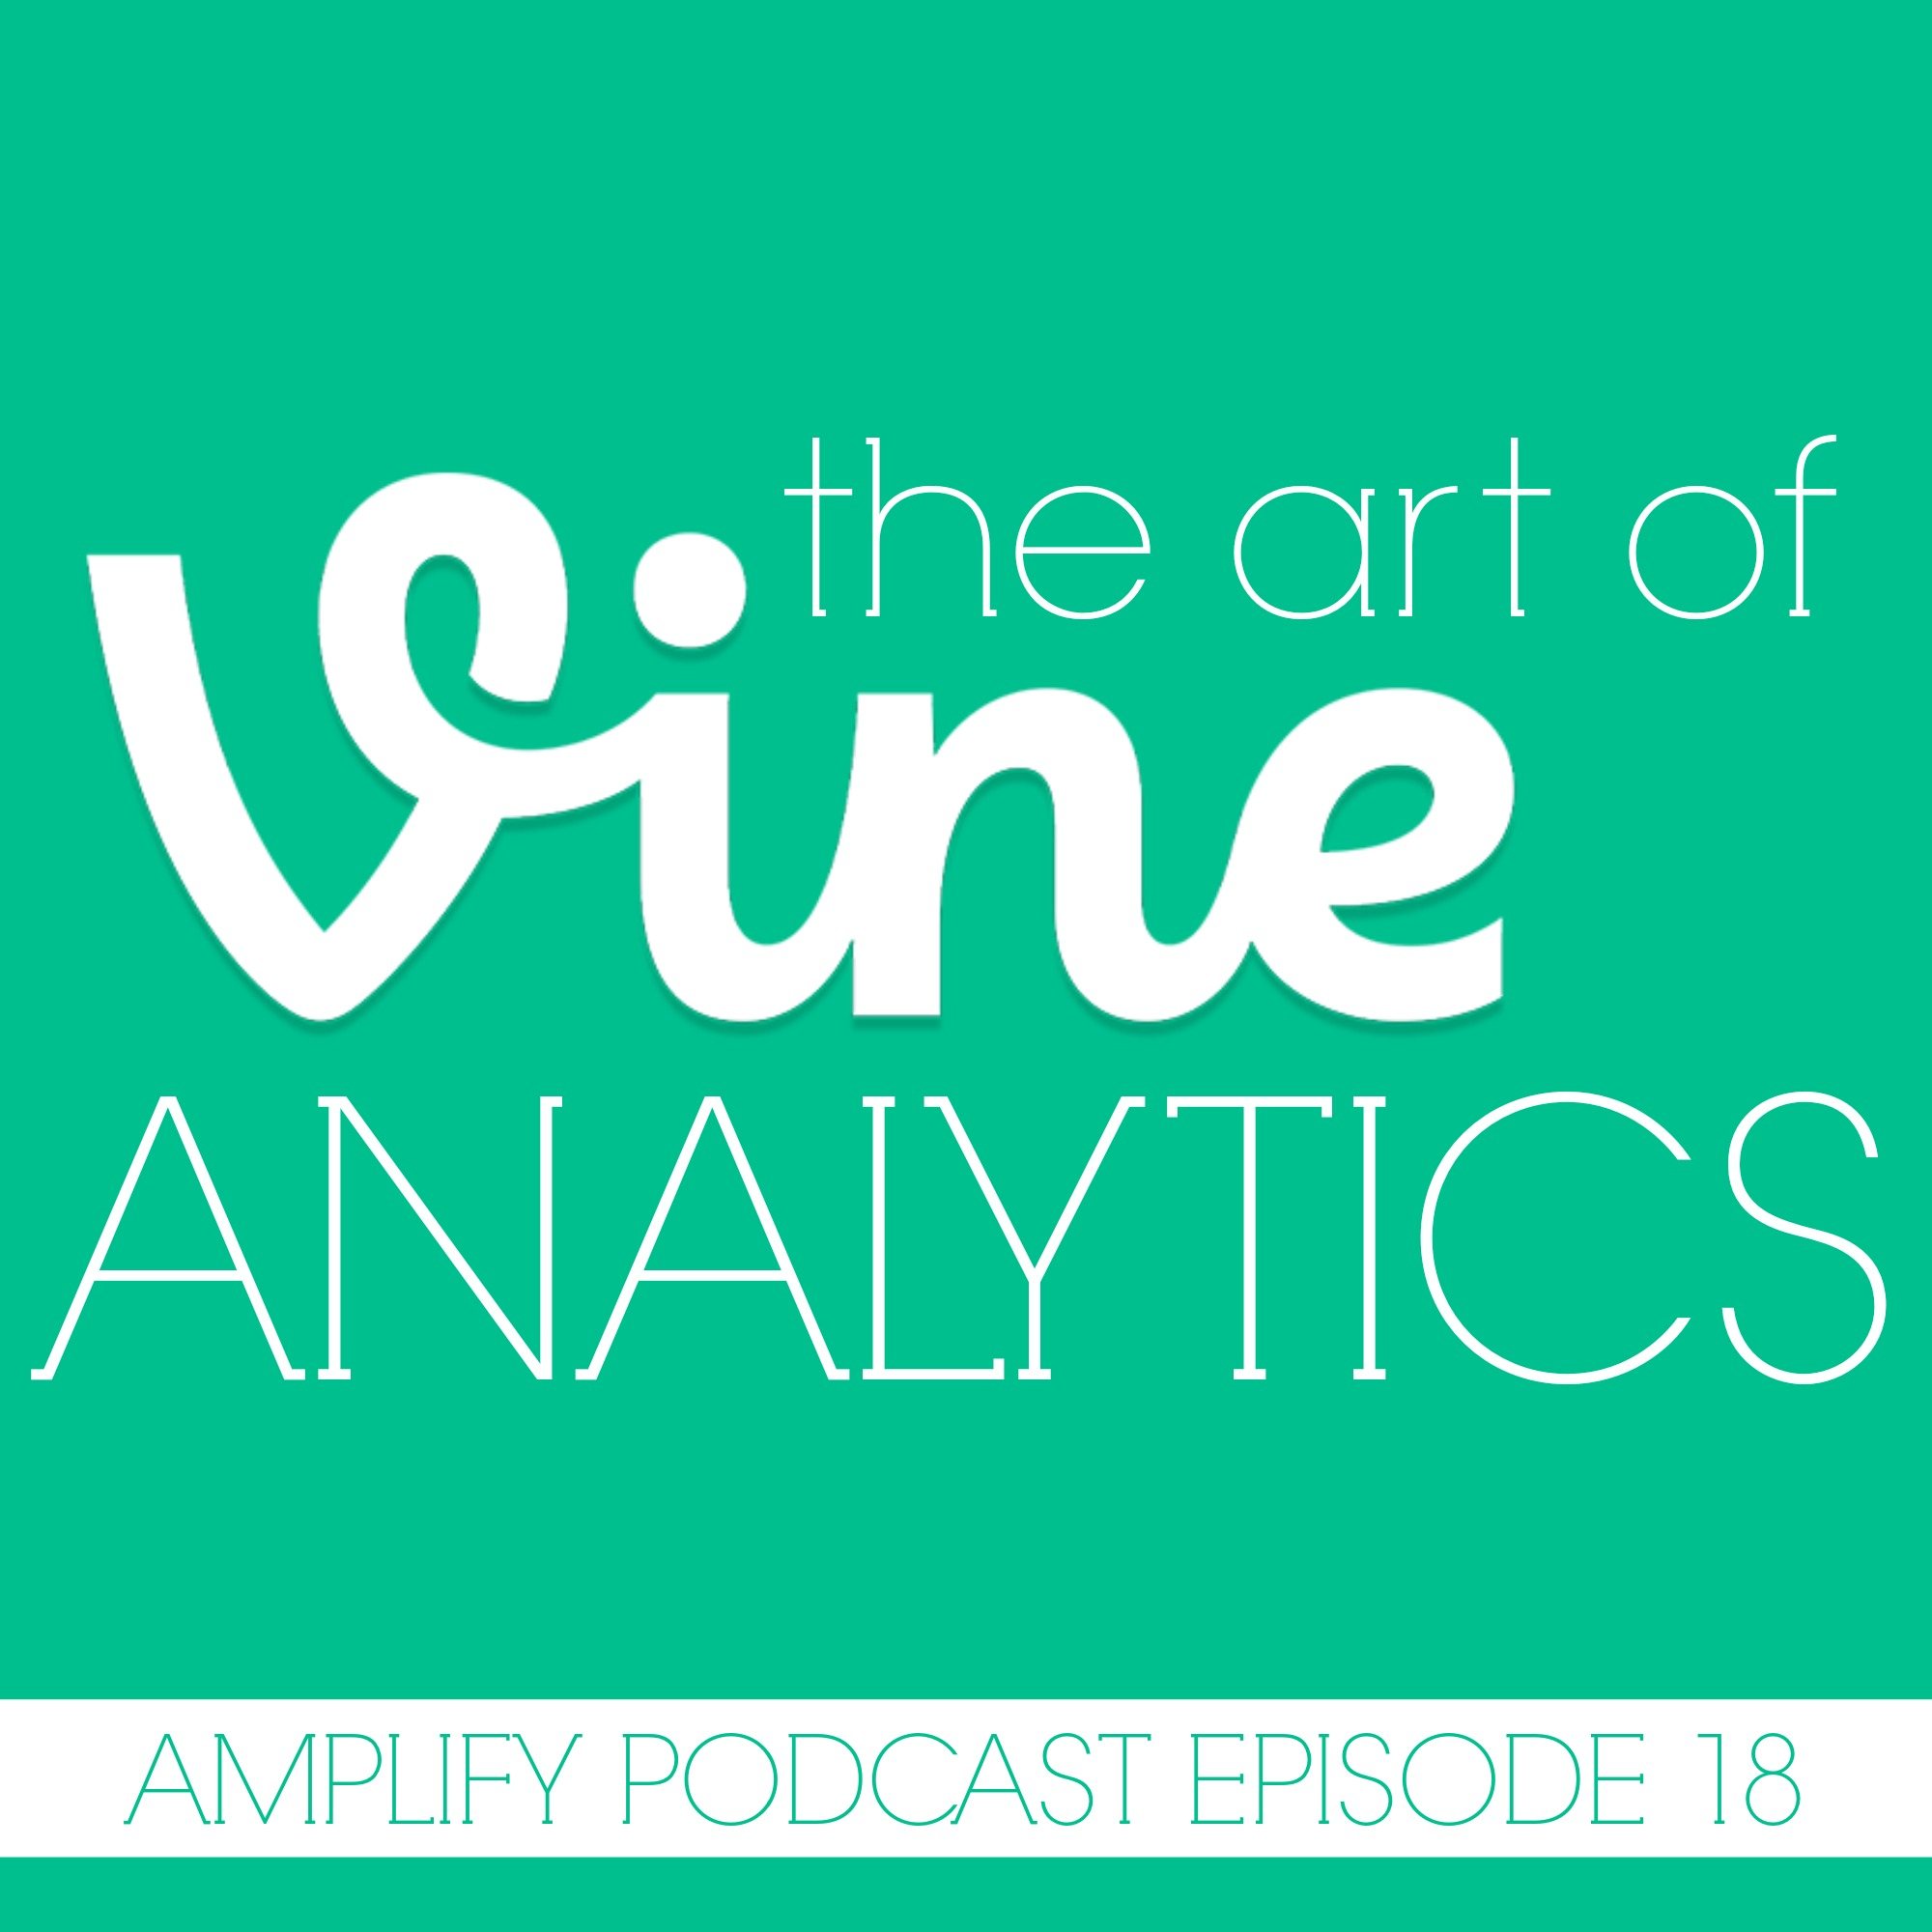 The Art of Vine Analytics